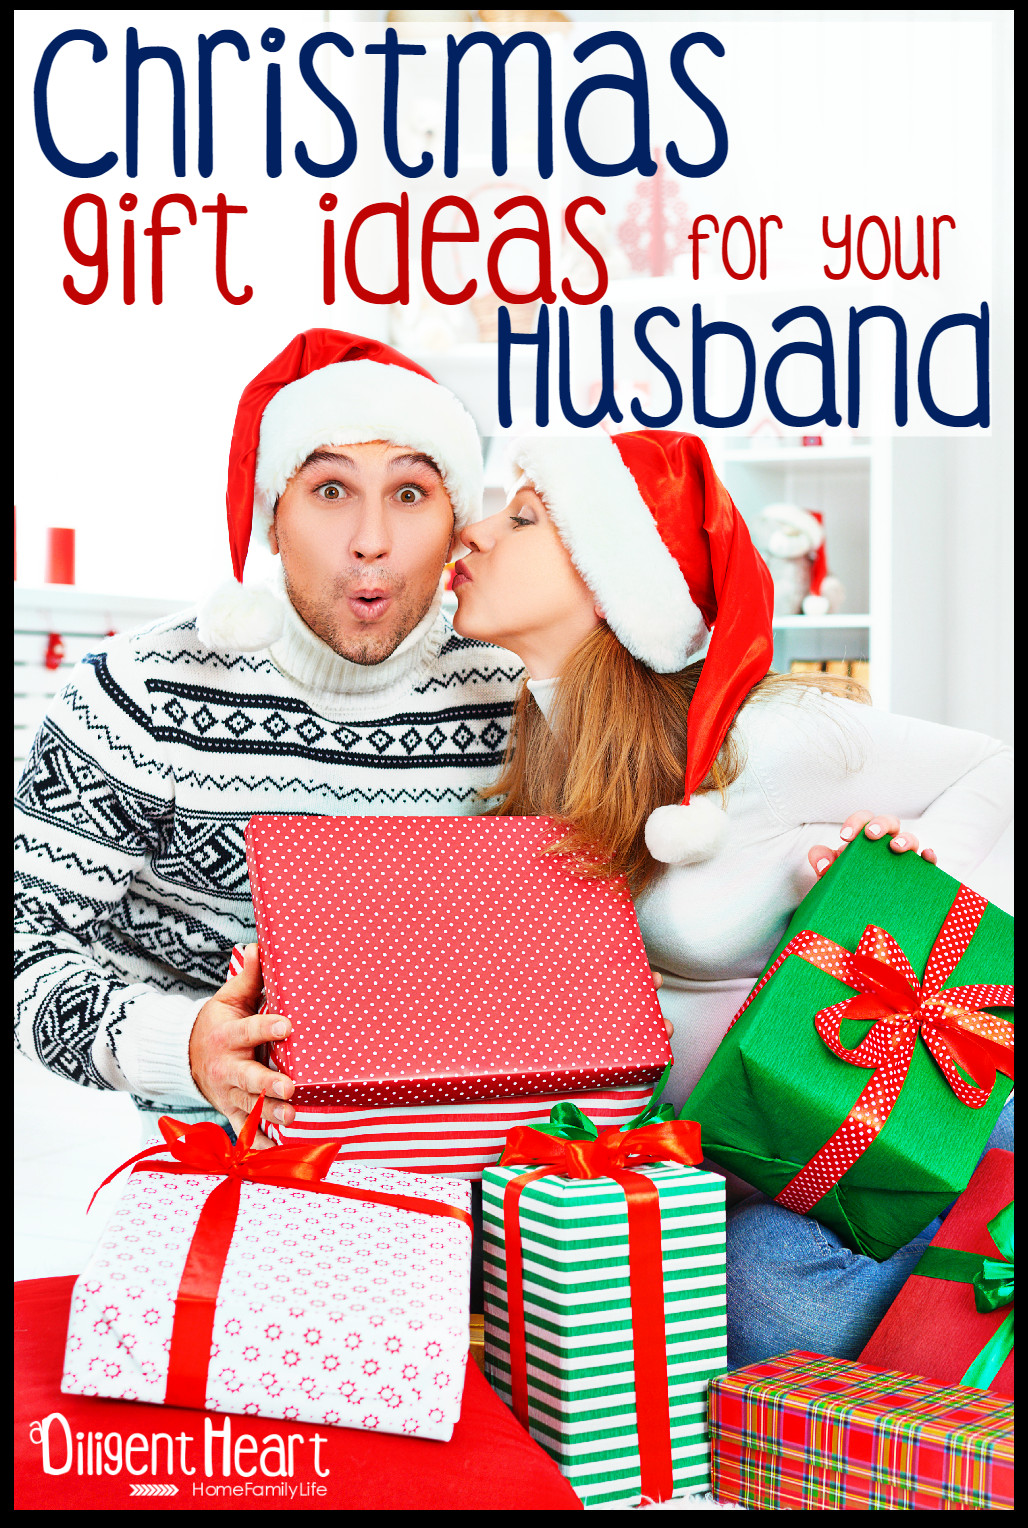 Holiday Gift Ideas Husband  Christmas Gift Ideas For Your Husband